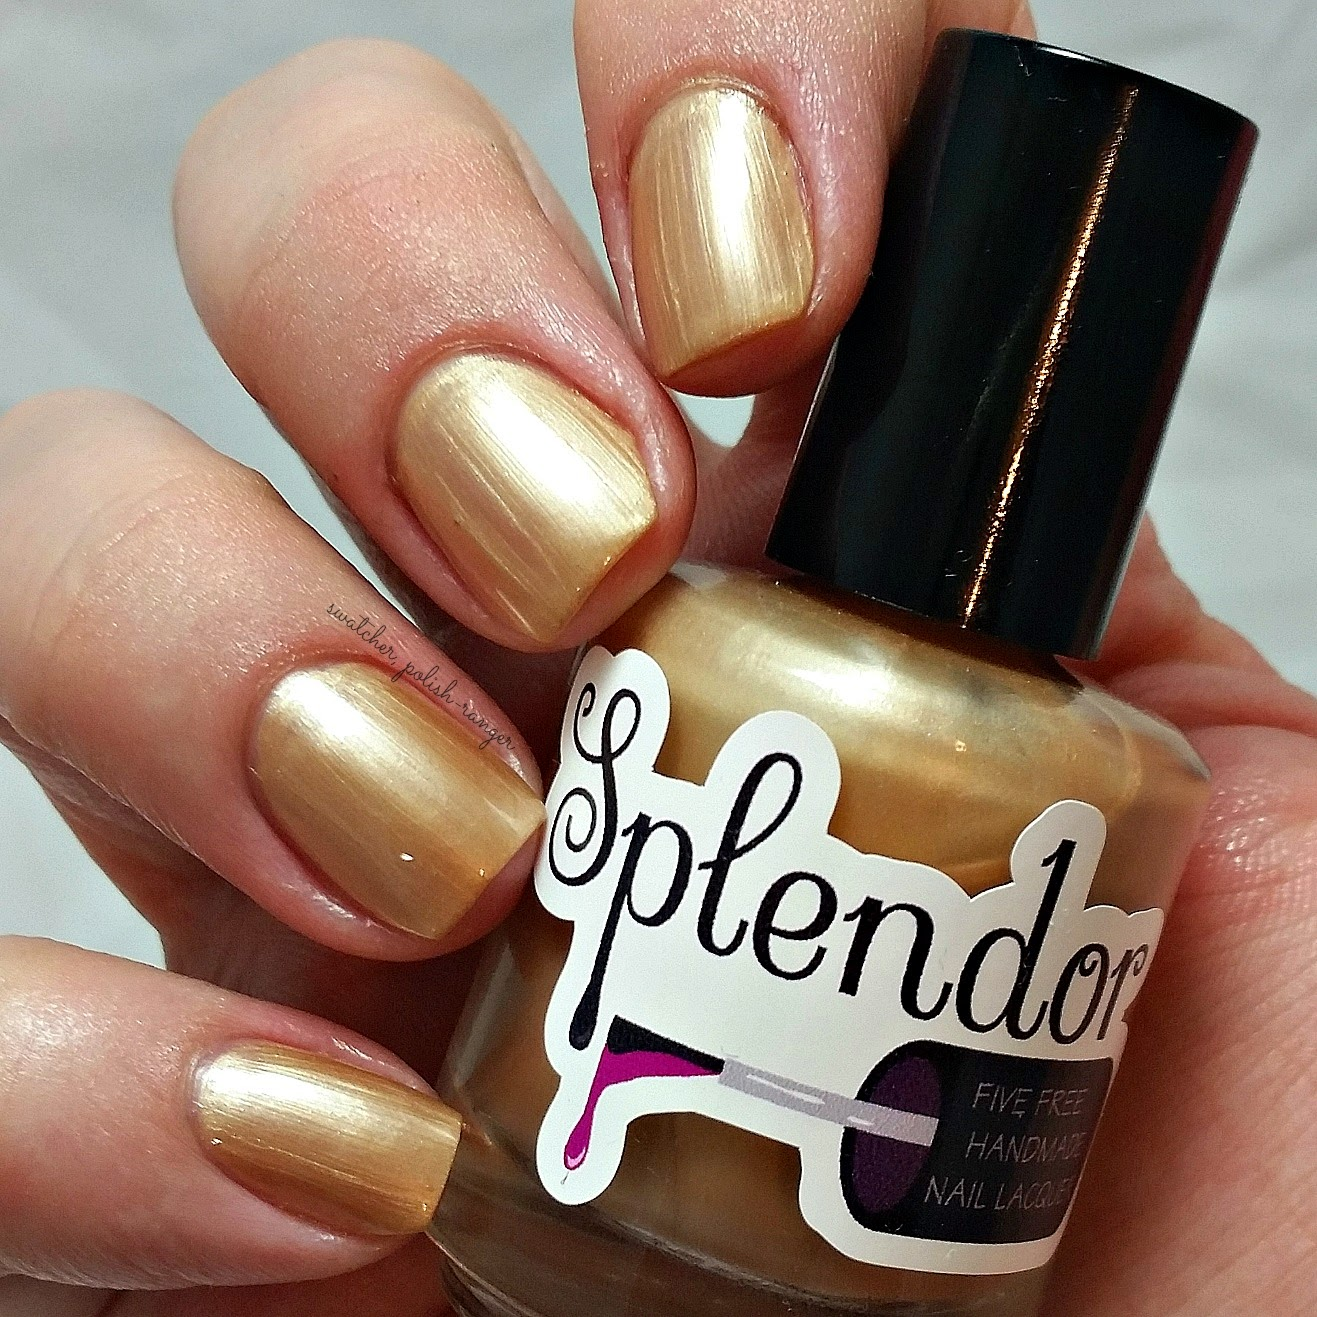 swatcher, polish-ranger | Splendor Nail Lacquer Pudding Sauce swatch